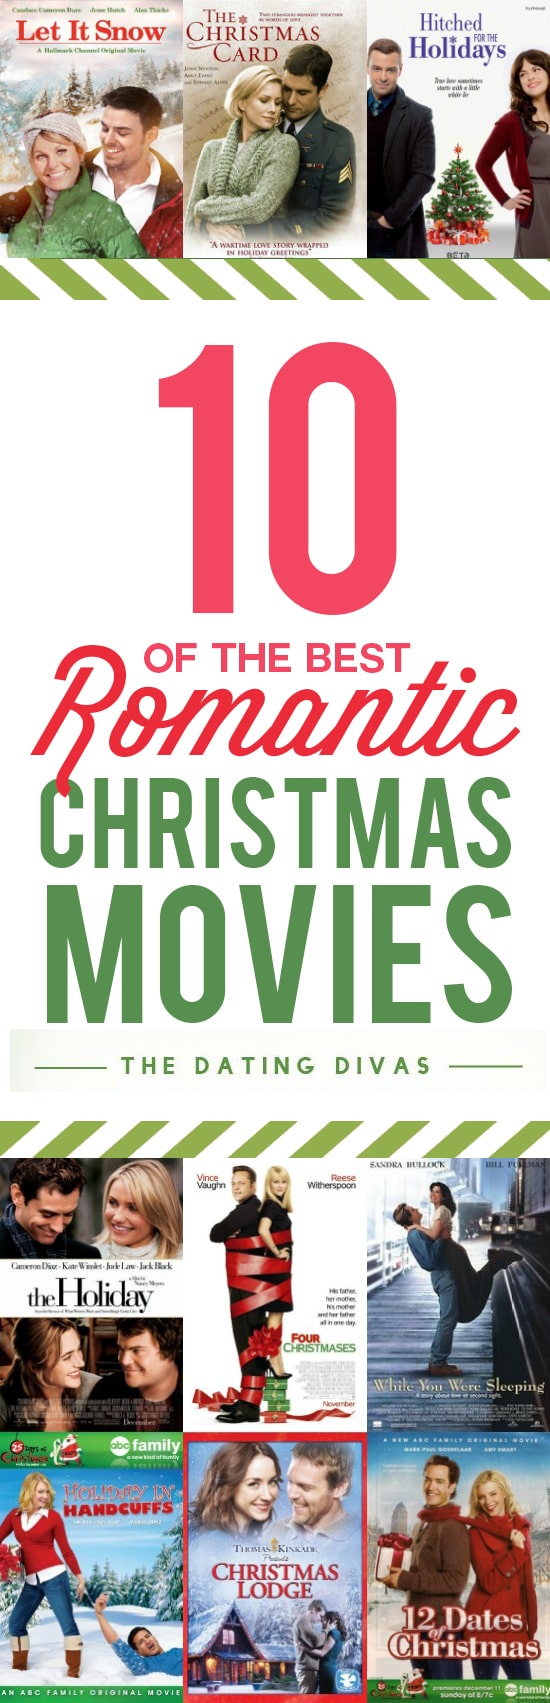 Romantic Christmas Movies